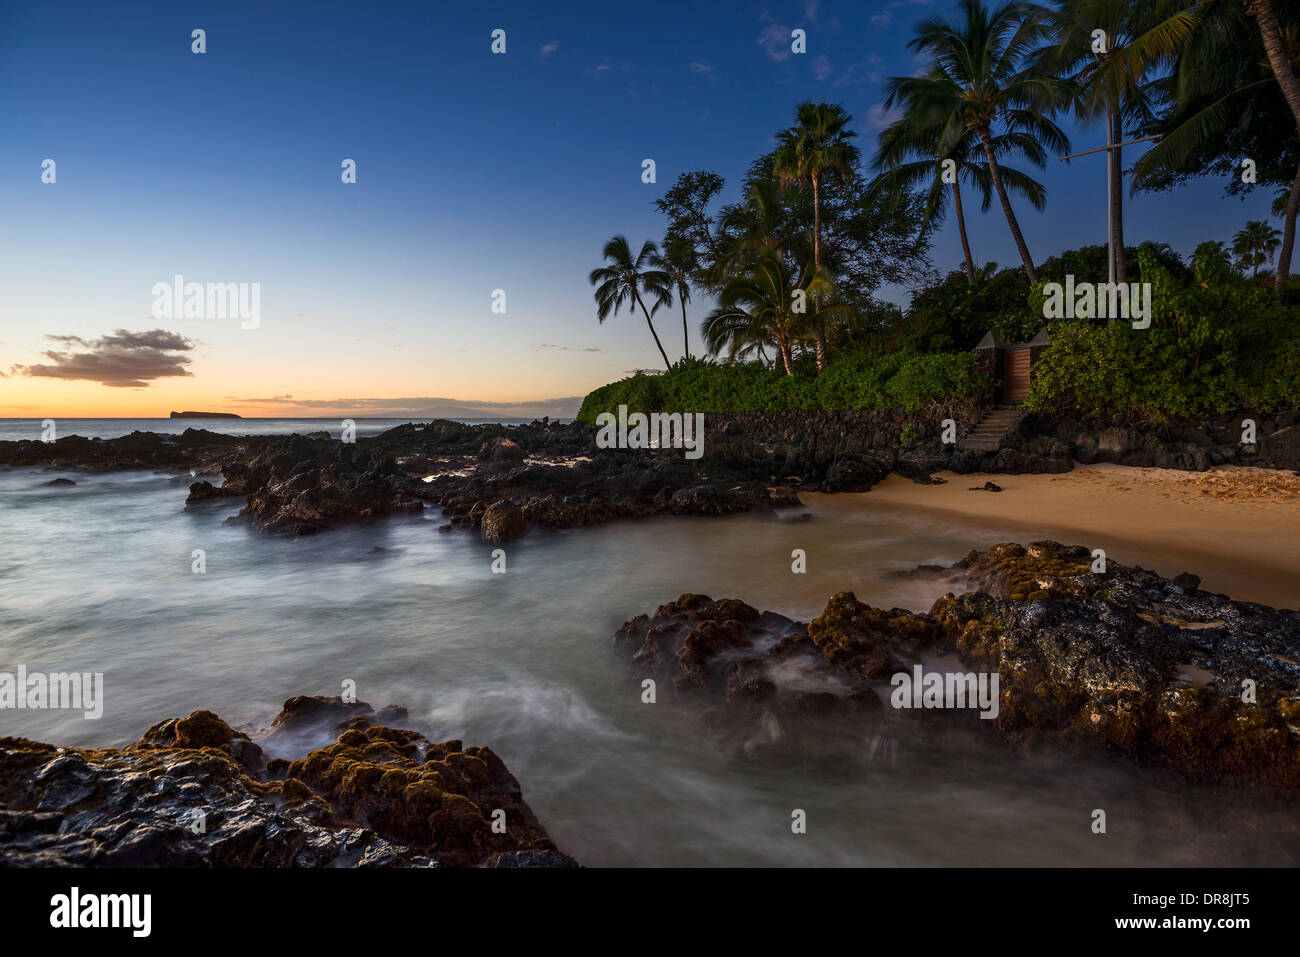 Beautiful and secluded Secret Beach in Maui, Hawaii. - Stock Image